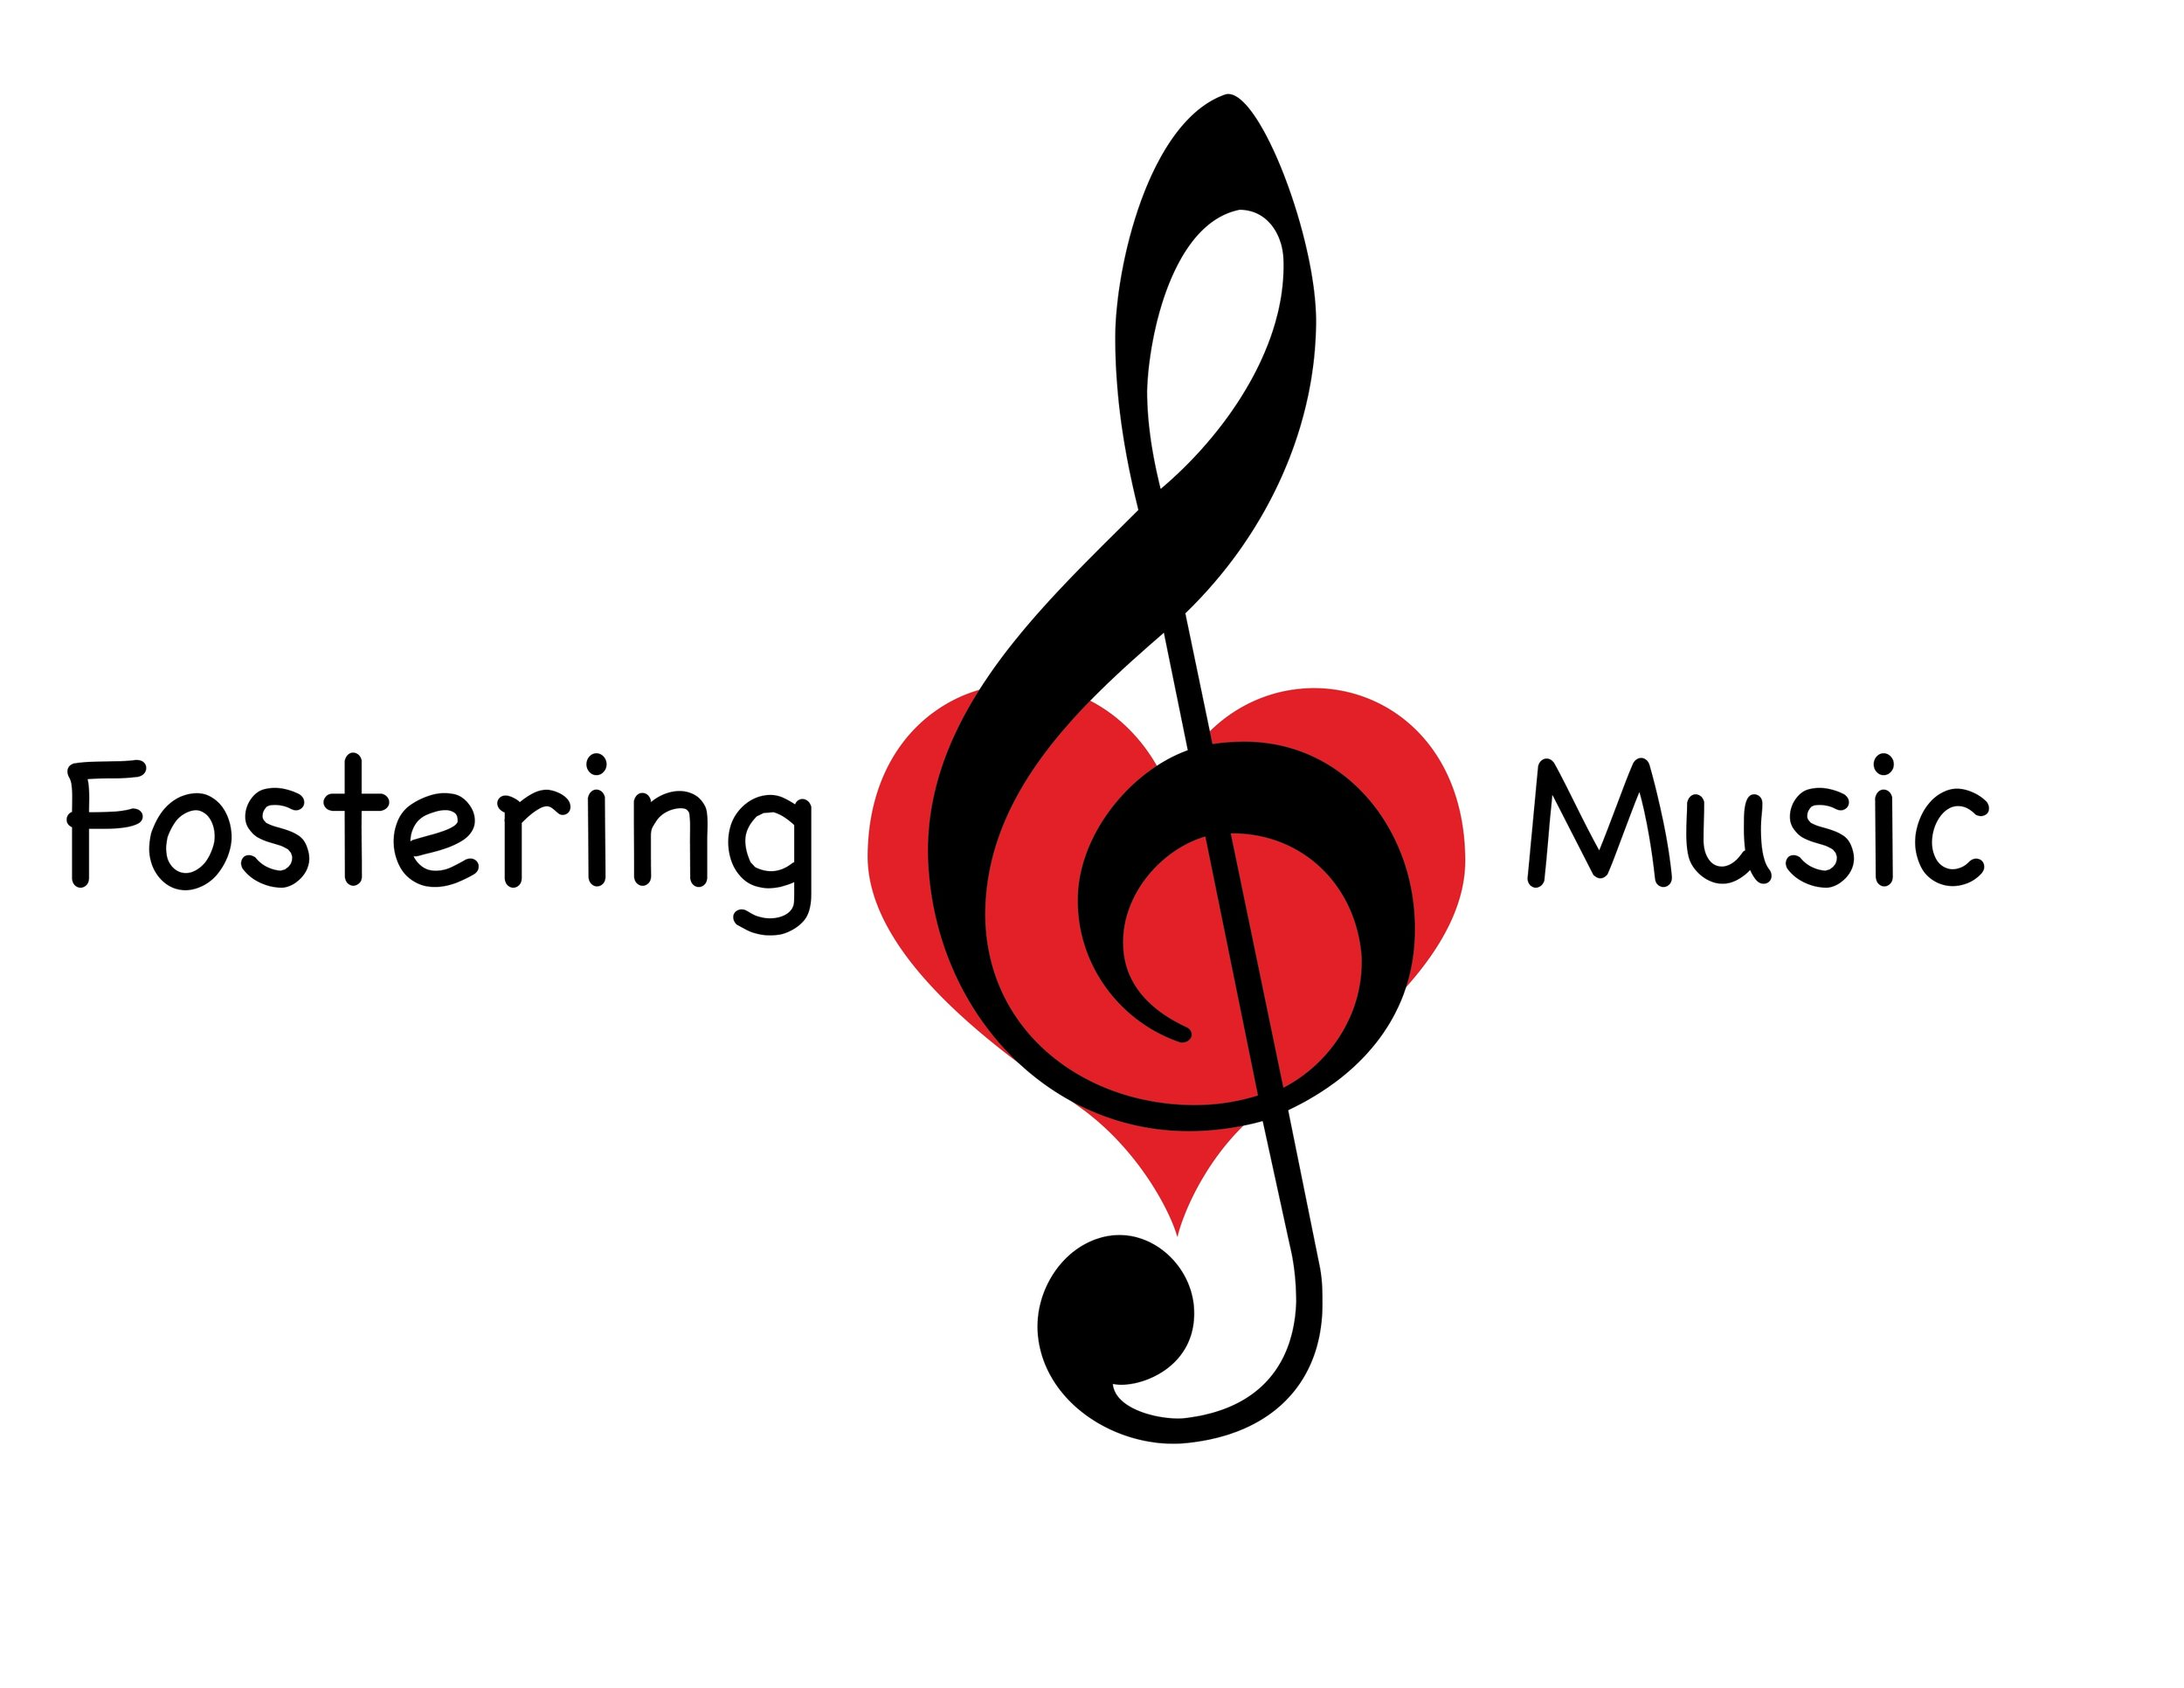 Fostering Music Logo corrected version 10-10-18.jpg